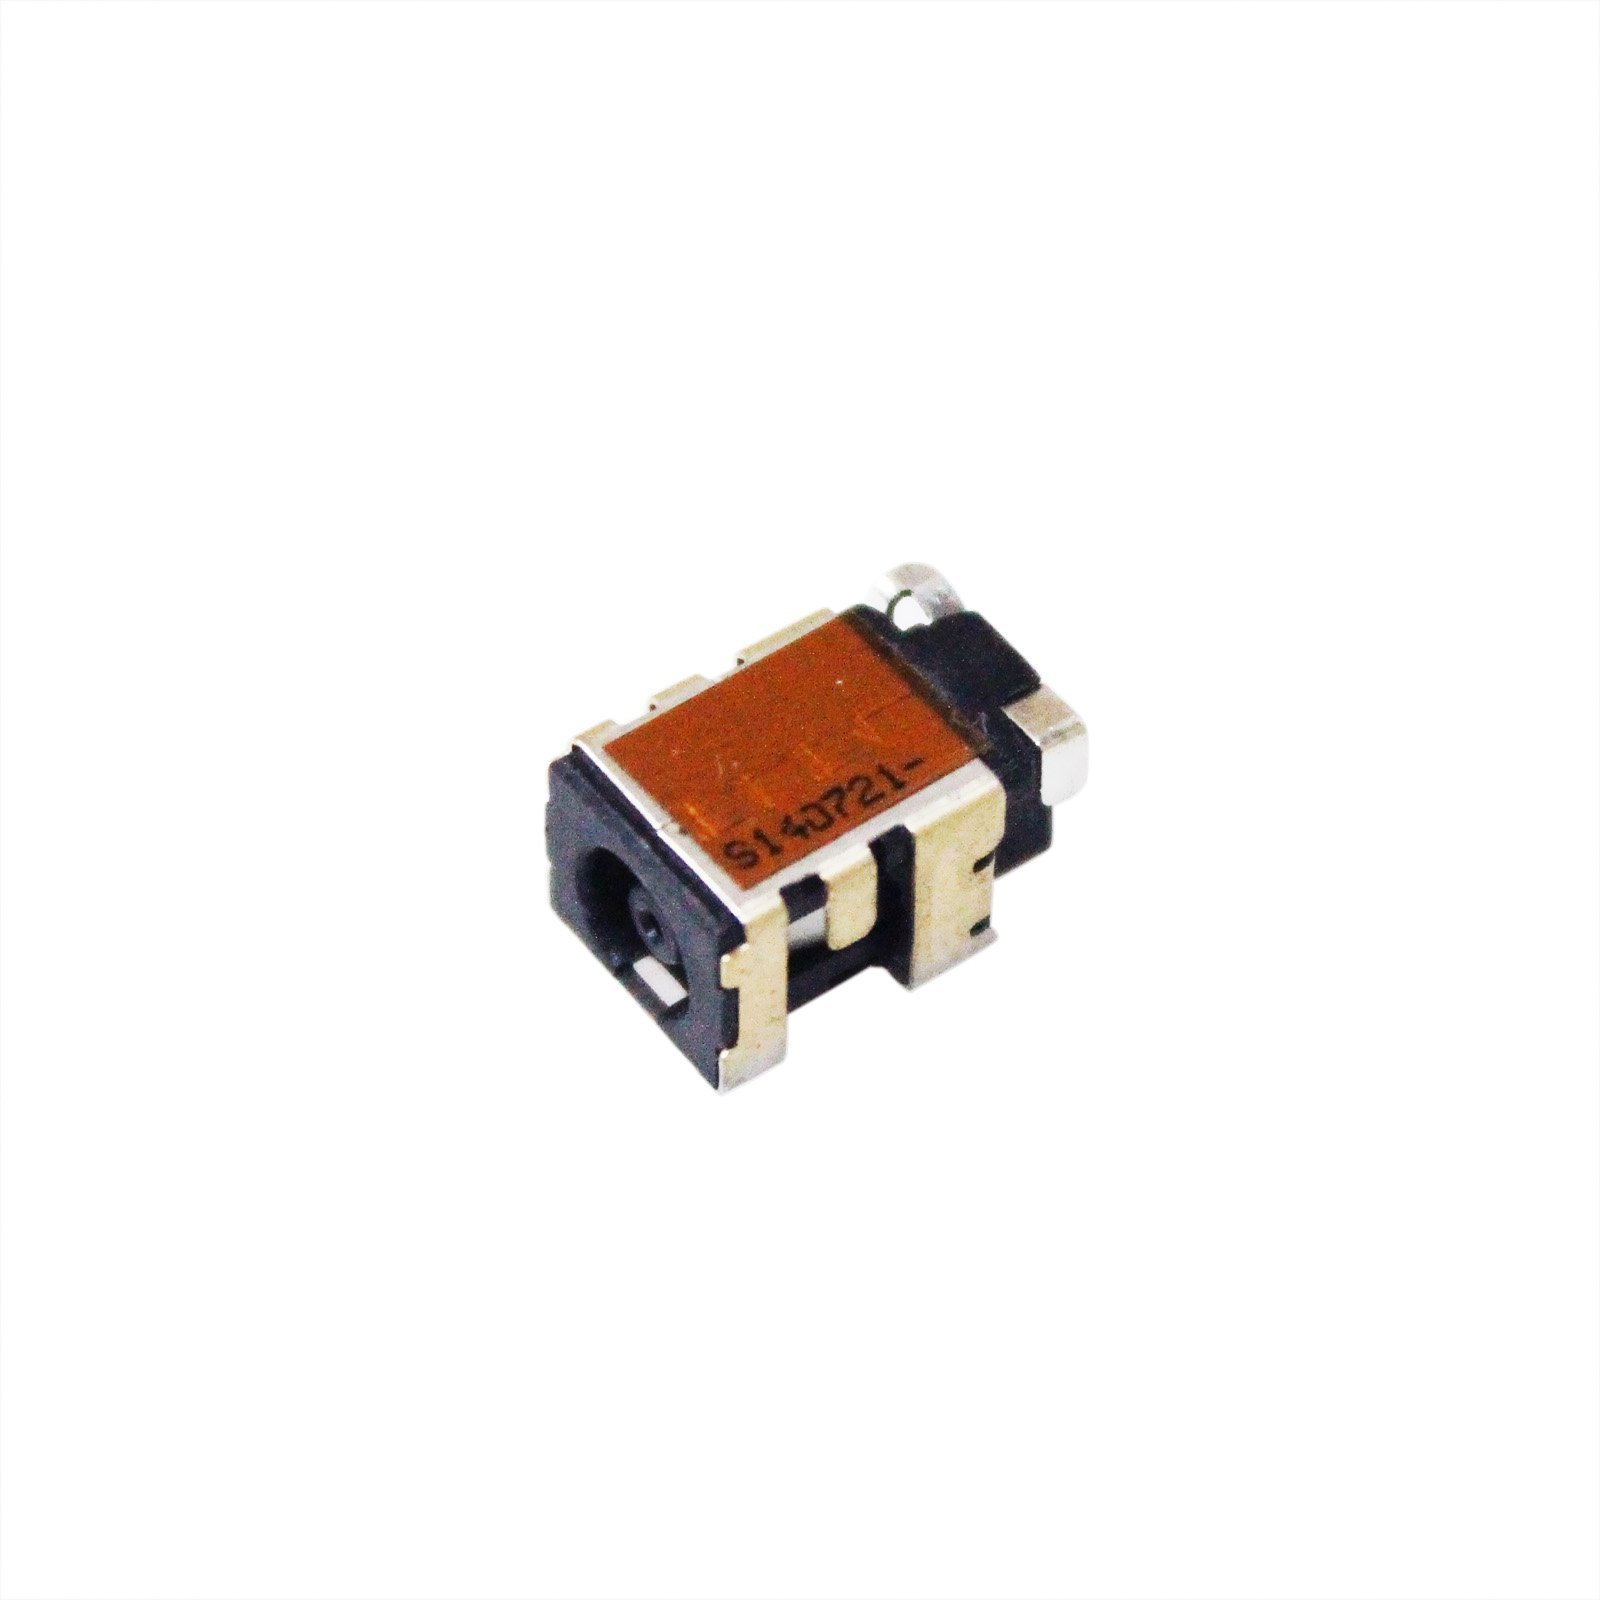 GinTai DC Power Jack Replacement for ASUS Compatible with n501jw ux501jw G501J G501JW G501JW-DS71 UX501V UX501VW by GinTai (Image #3)